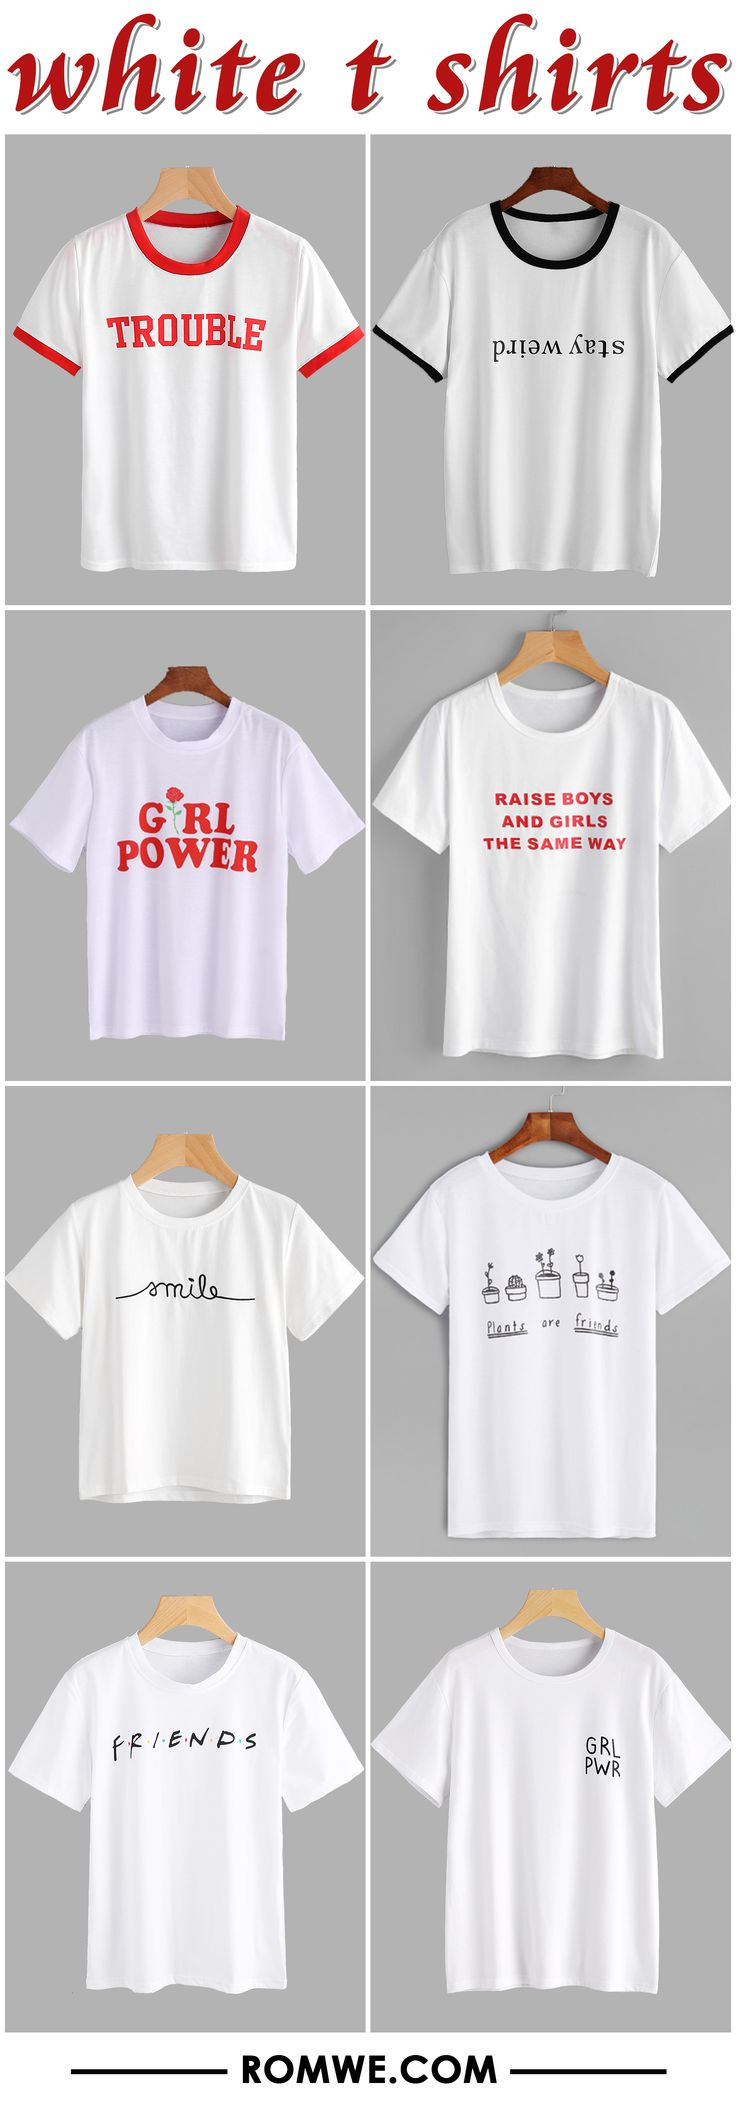 white t shirts from romwe.com